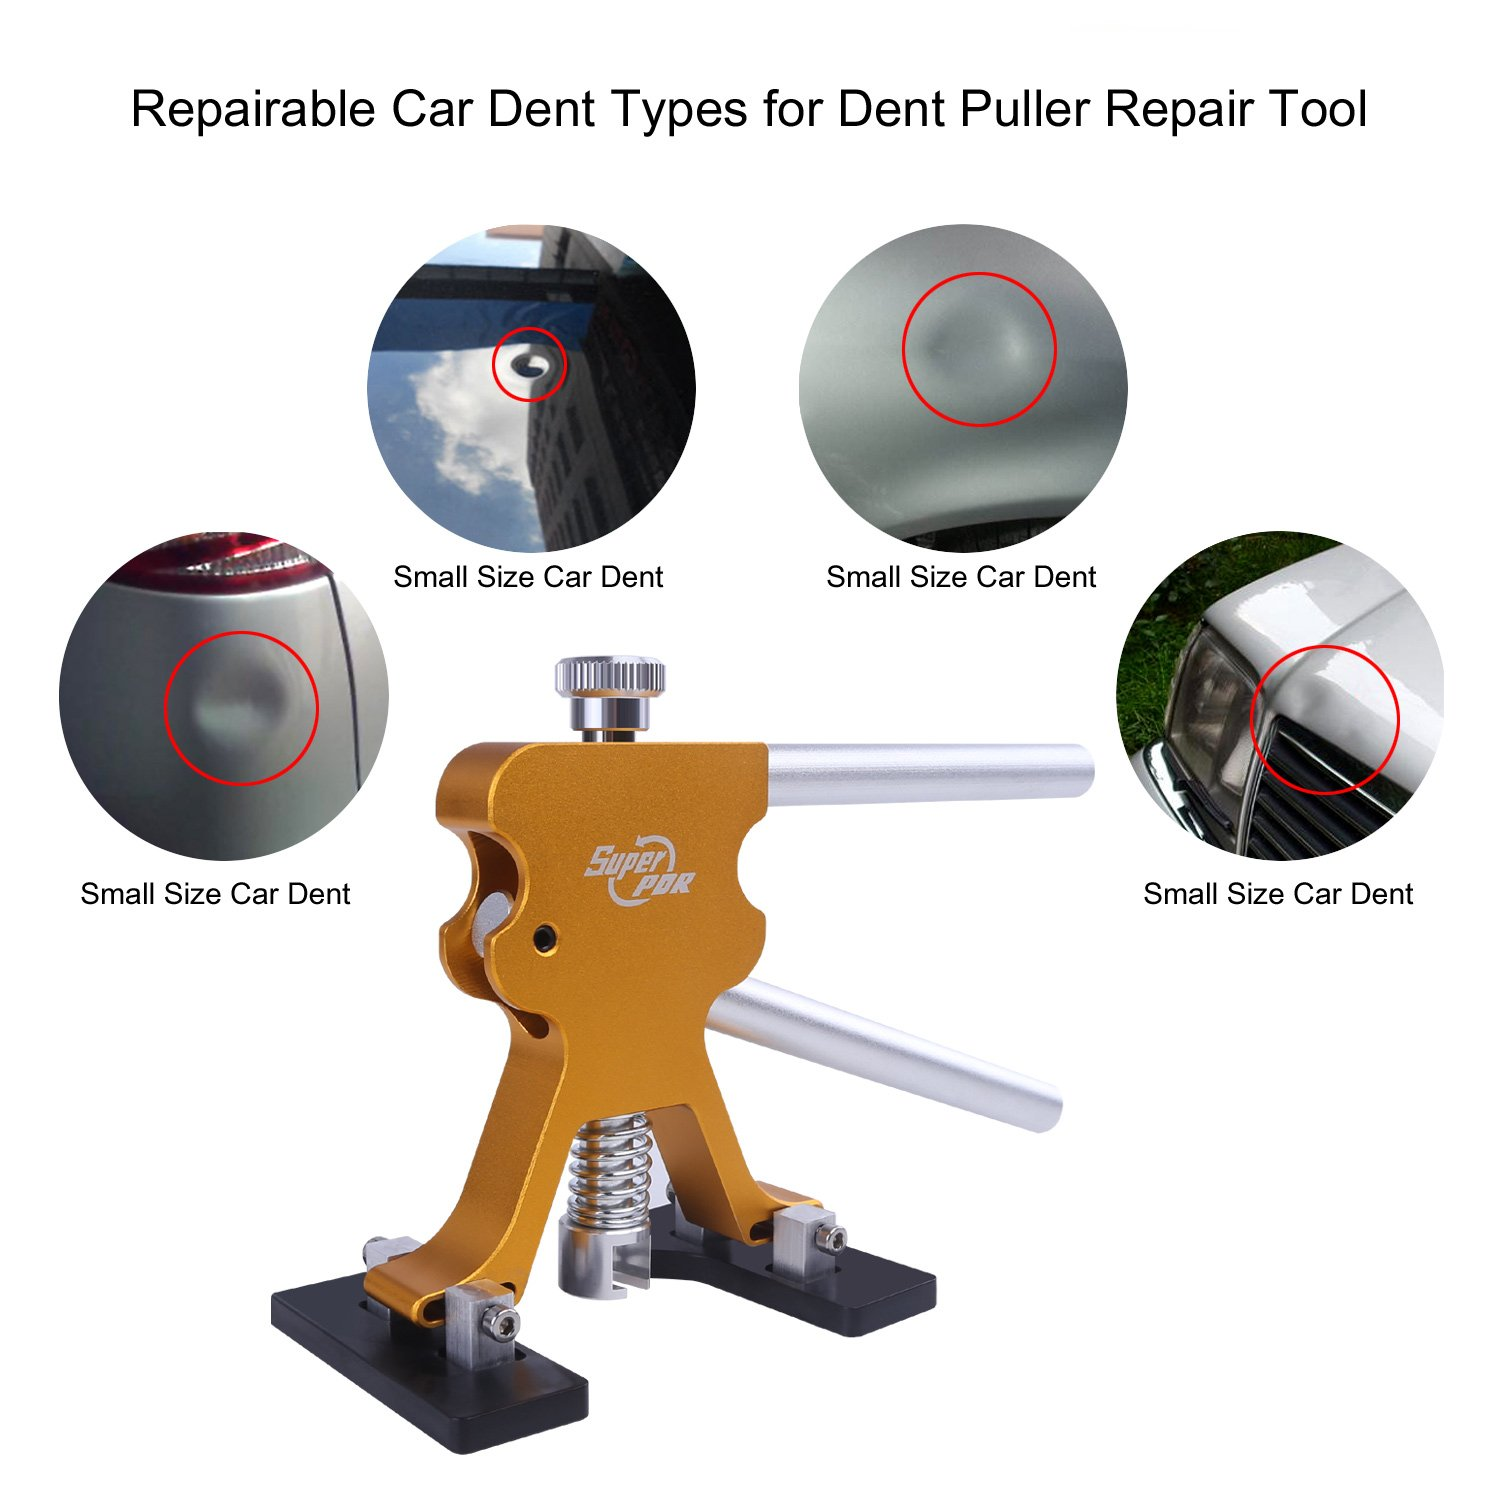 Fly5D Car Door Dent Remover Auto Ding Puller Golden Dent Lifter With 21 Pieces PDR Glue Tabs by Fly5D (Image #9)